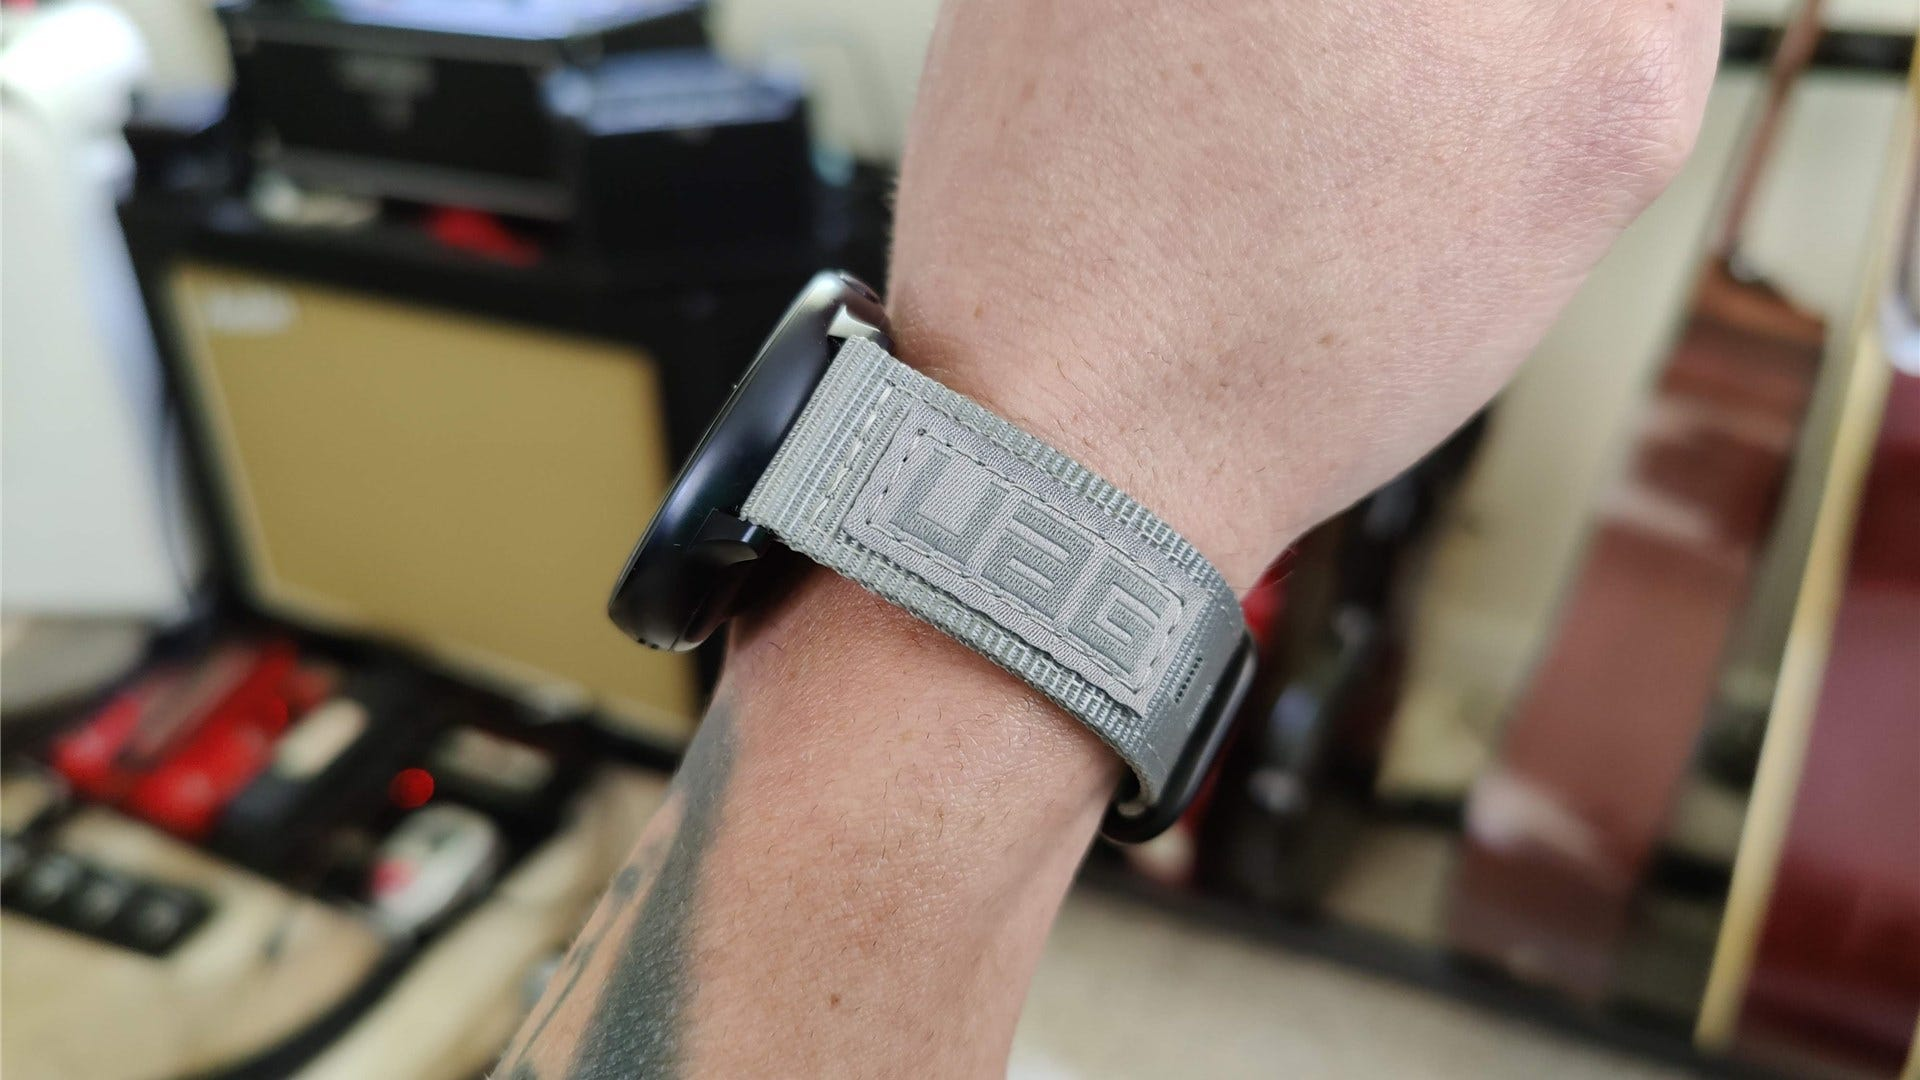 Side view of the UAG Nato band